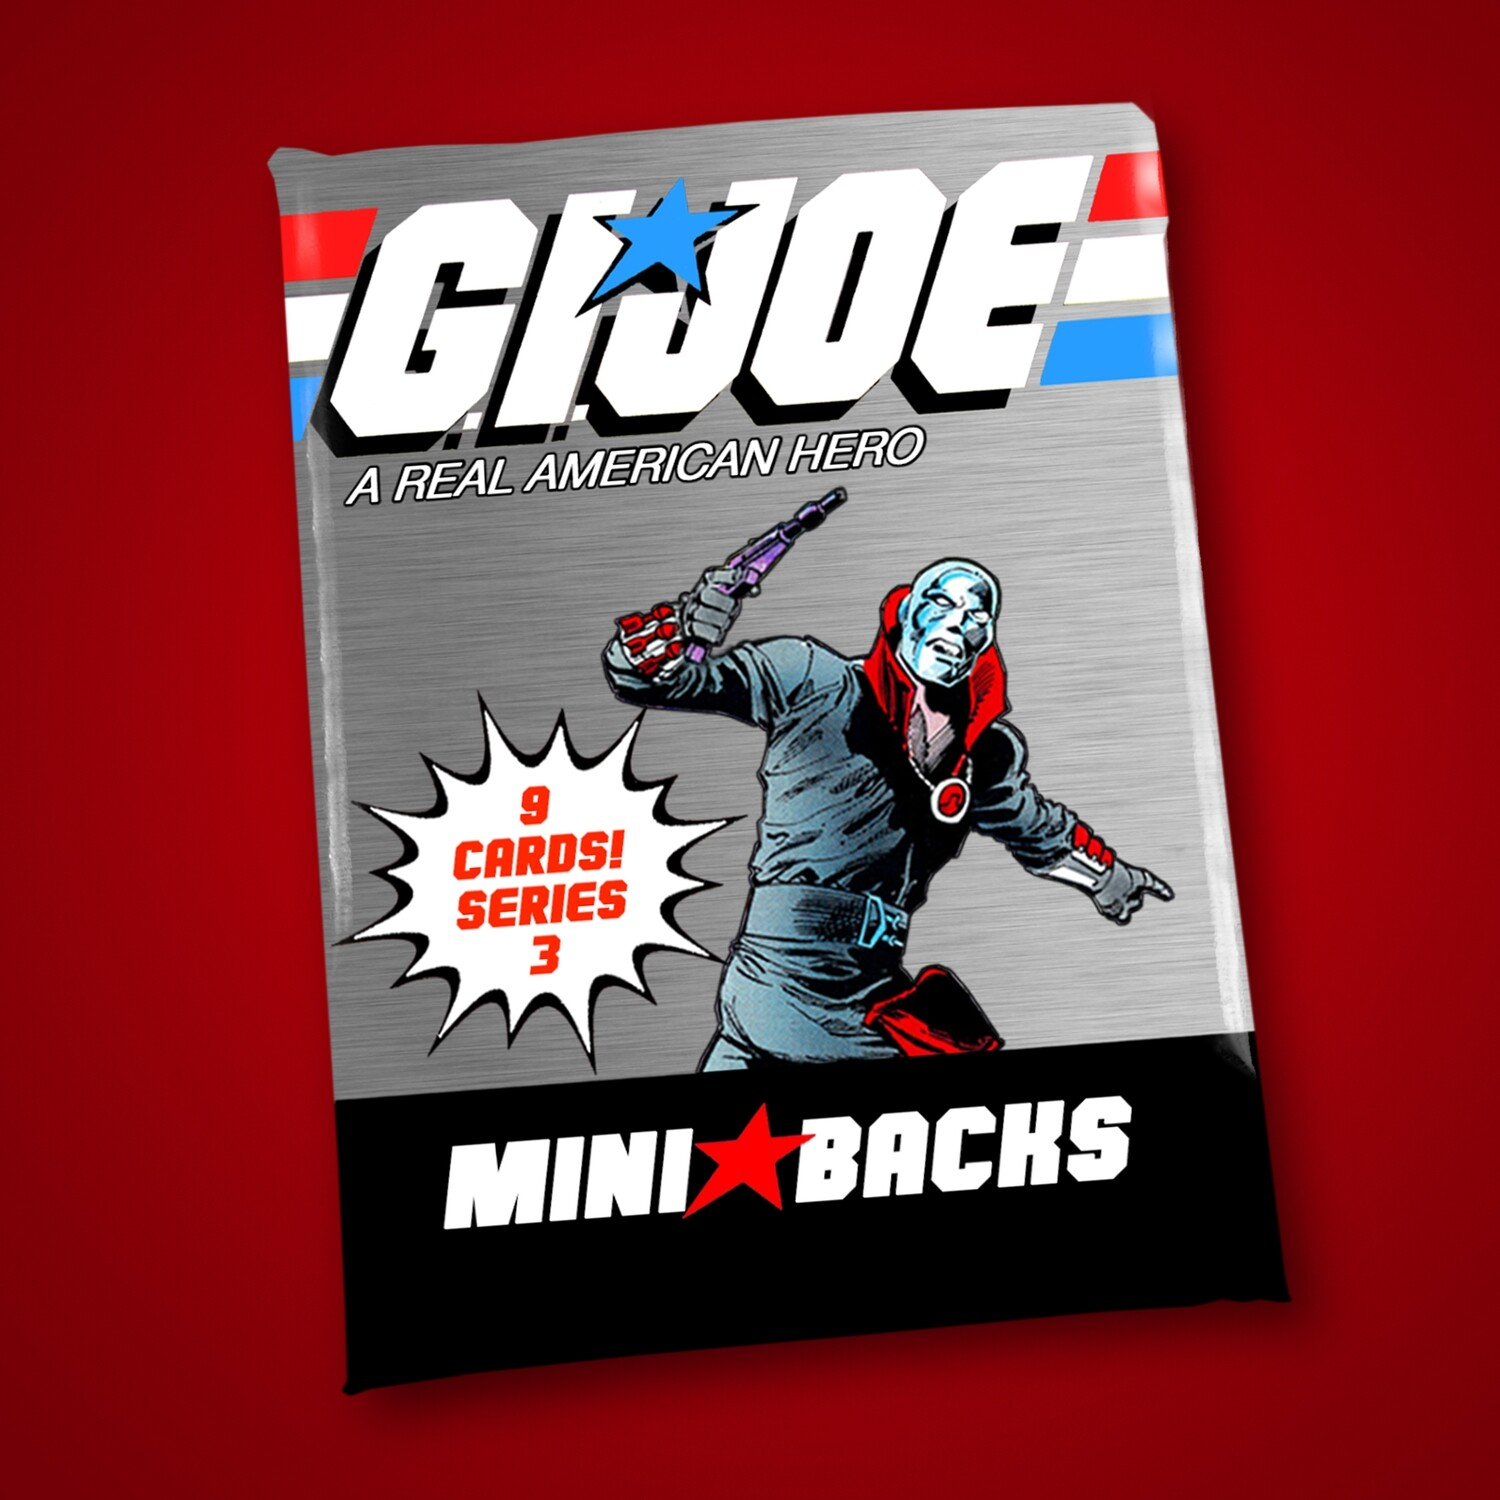 GI JOE SERIES 3 MINI BACK WAX PACK!